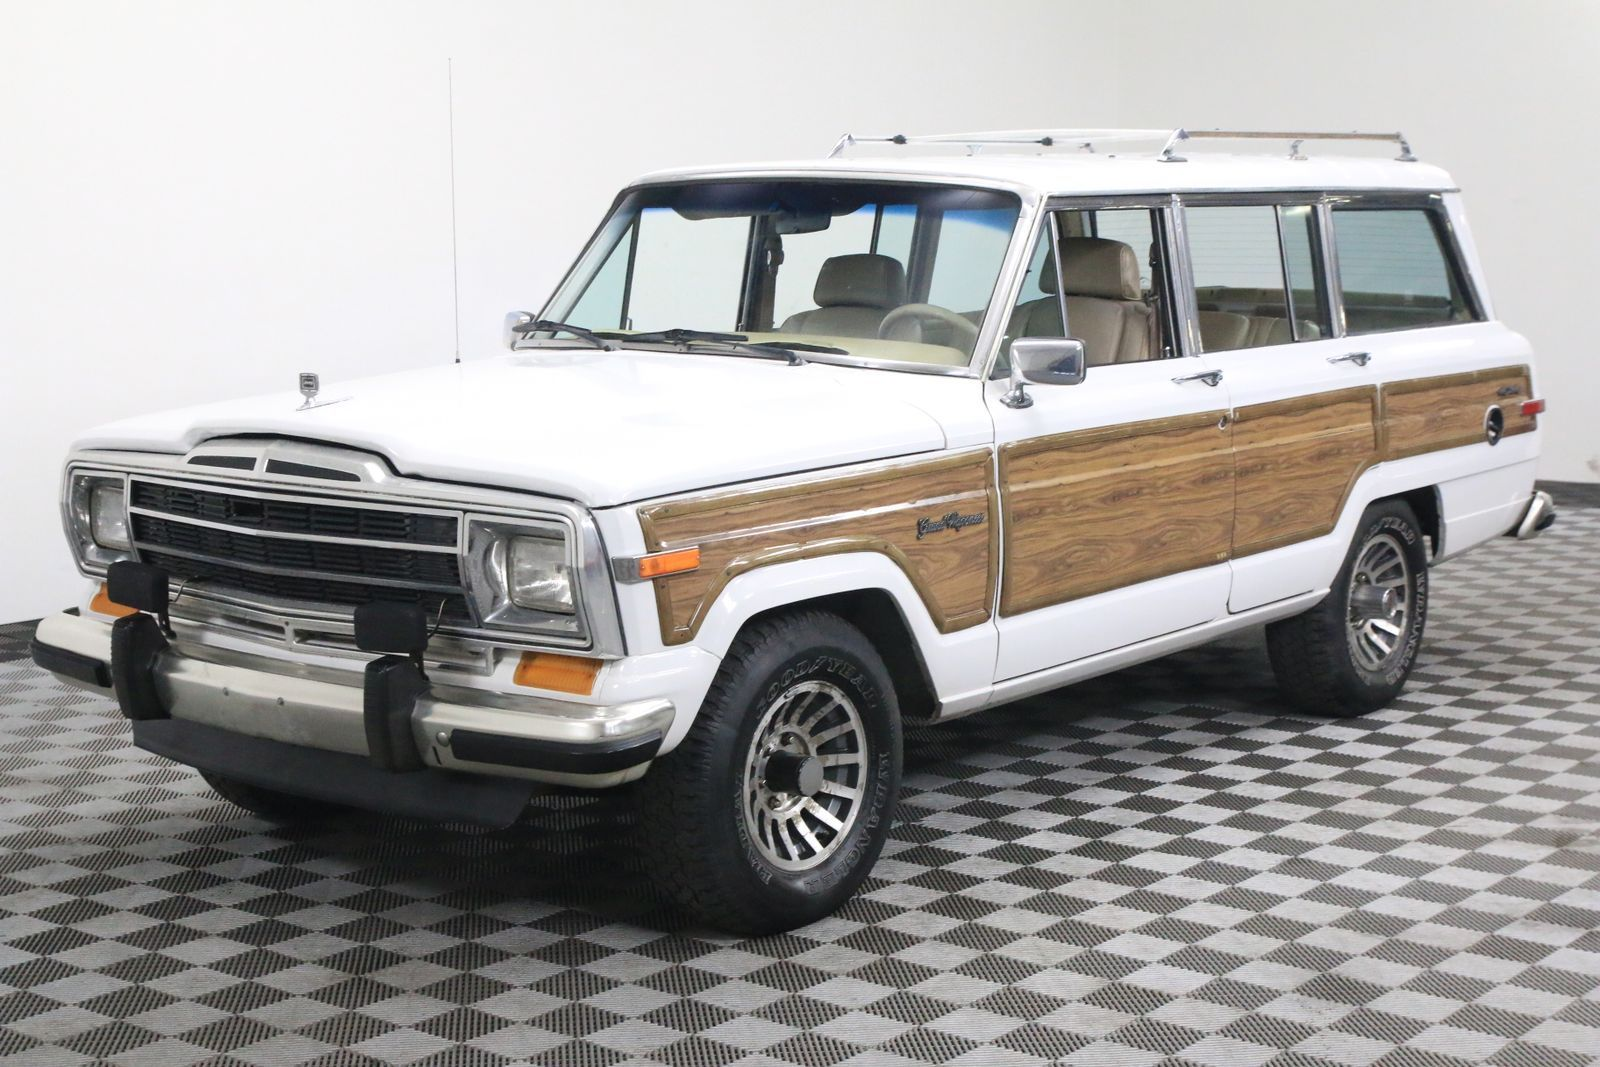 rare bright white luggage rack 1990 jeep wagoneer offroad for sale. Black Bedroom Furniture Sets. Home Design Ideas